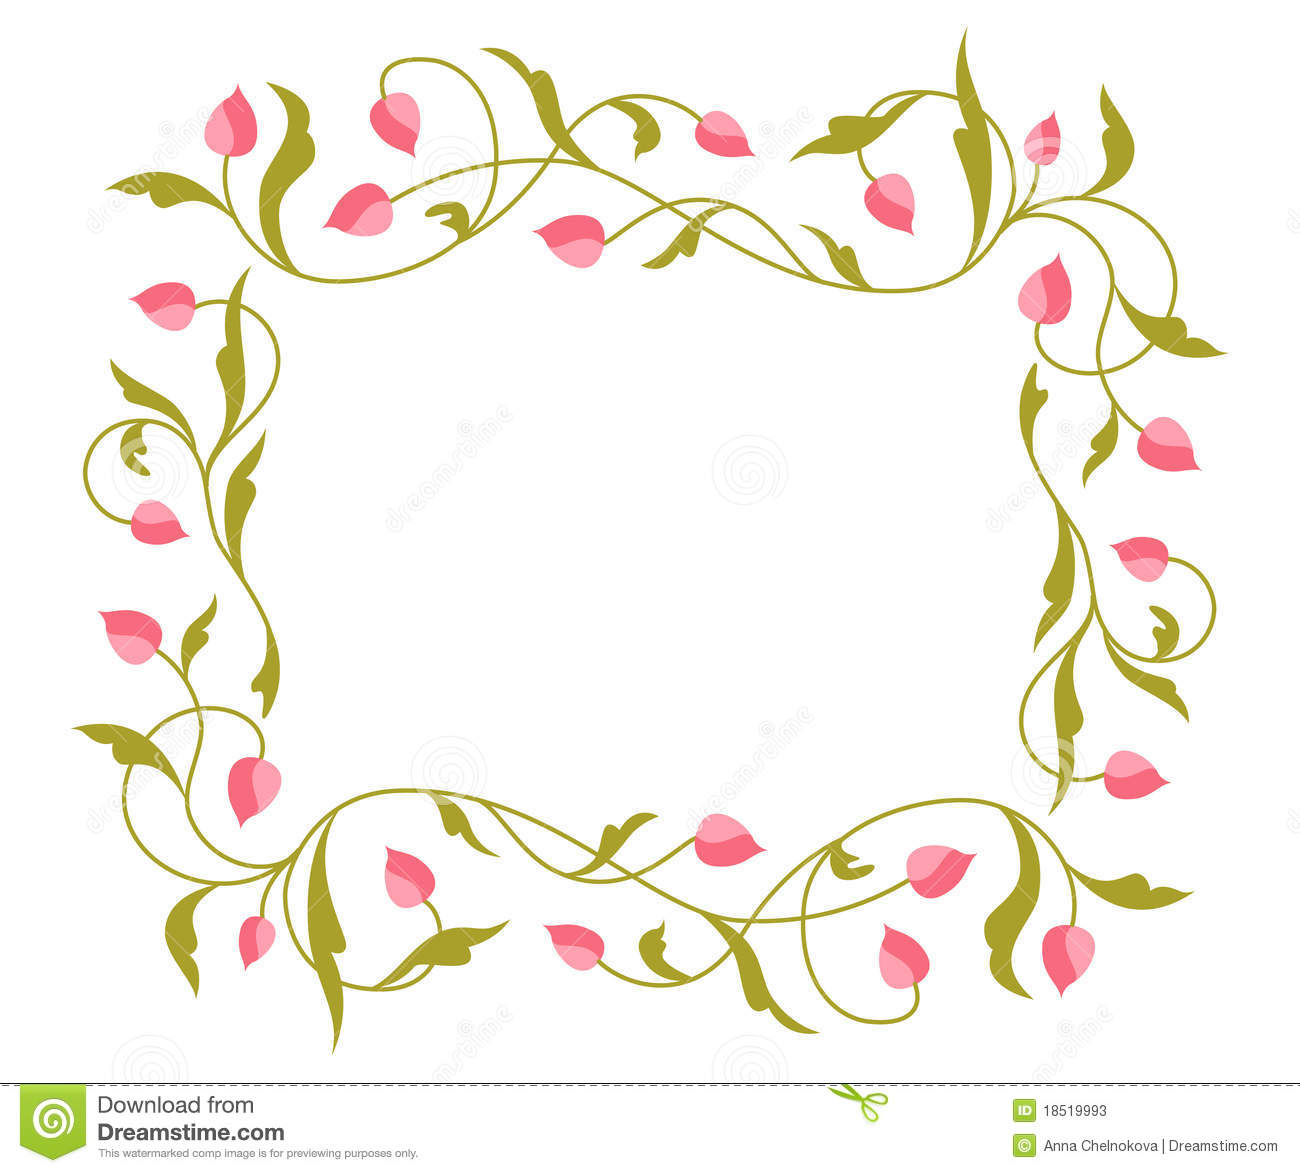 Greetings Card With Floral Pattern. Stock Vector